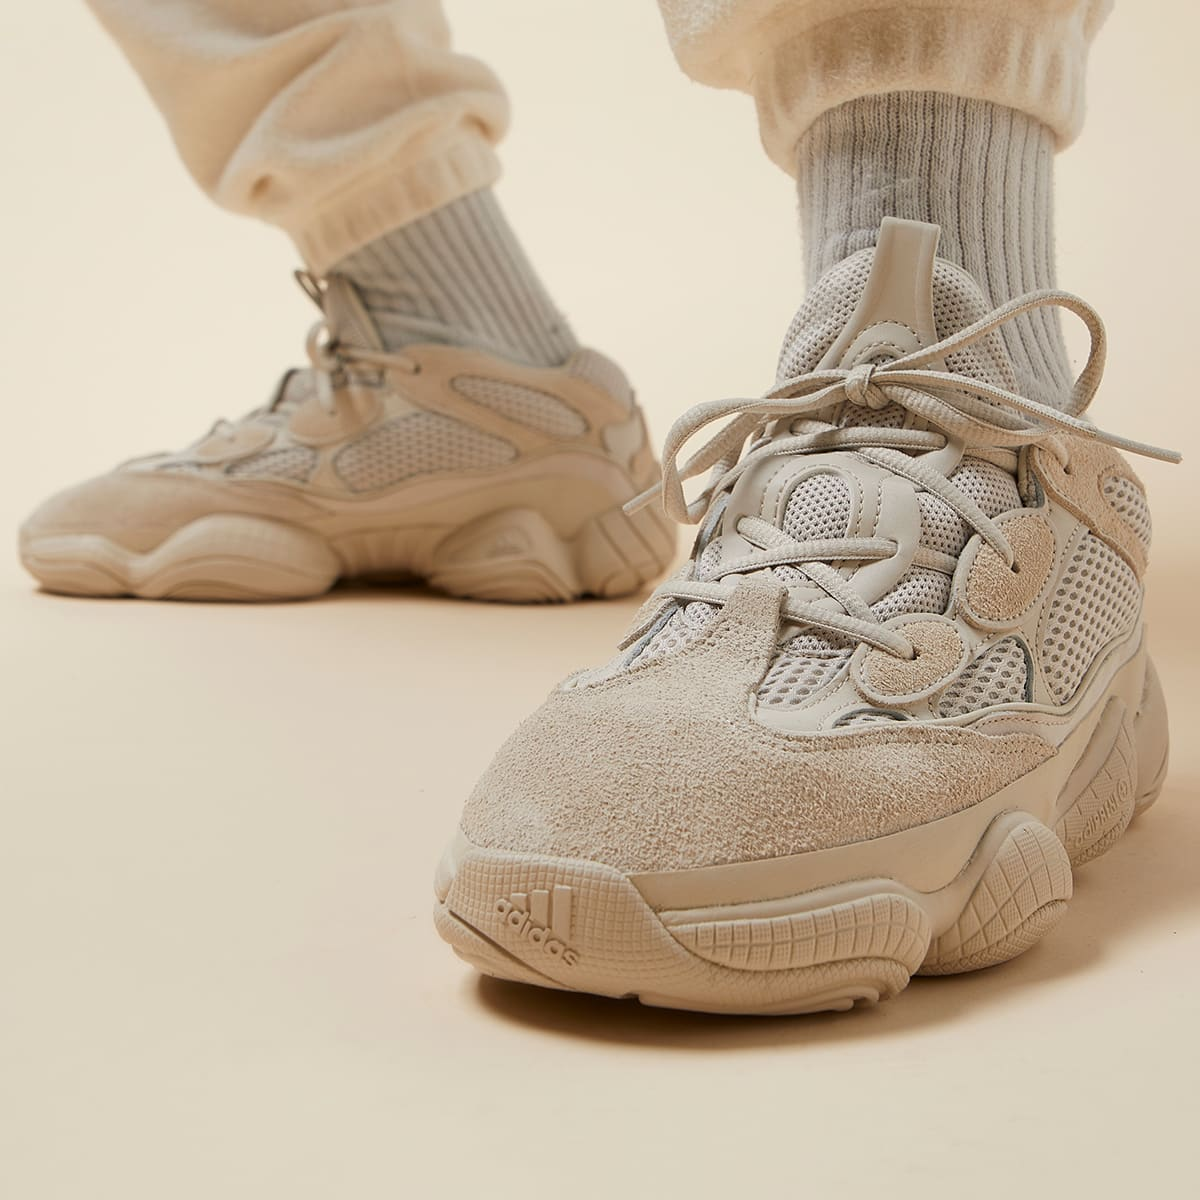 size 40 9c60d 6eddd END. Features | Take a Closer Look at the adidas + KANYE ...